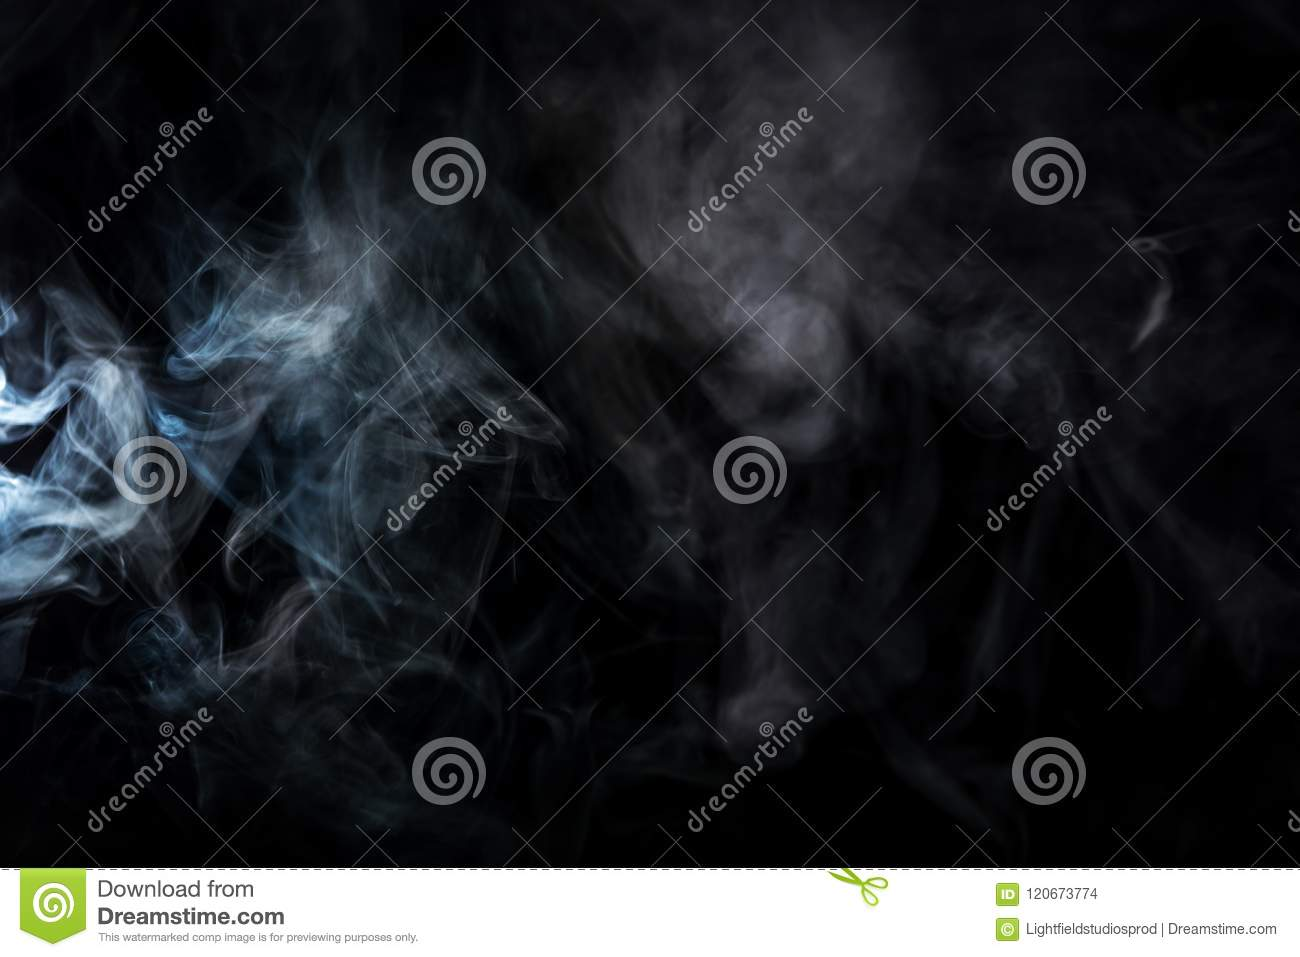 abstract background with grey smoky swirl